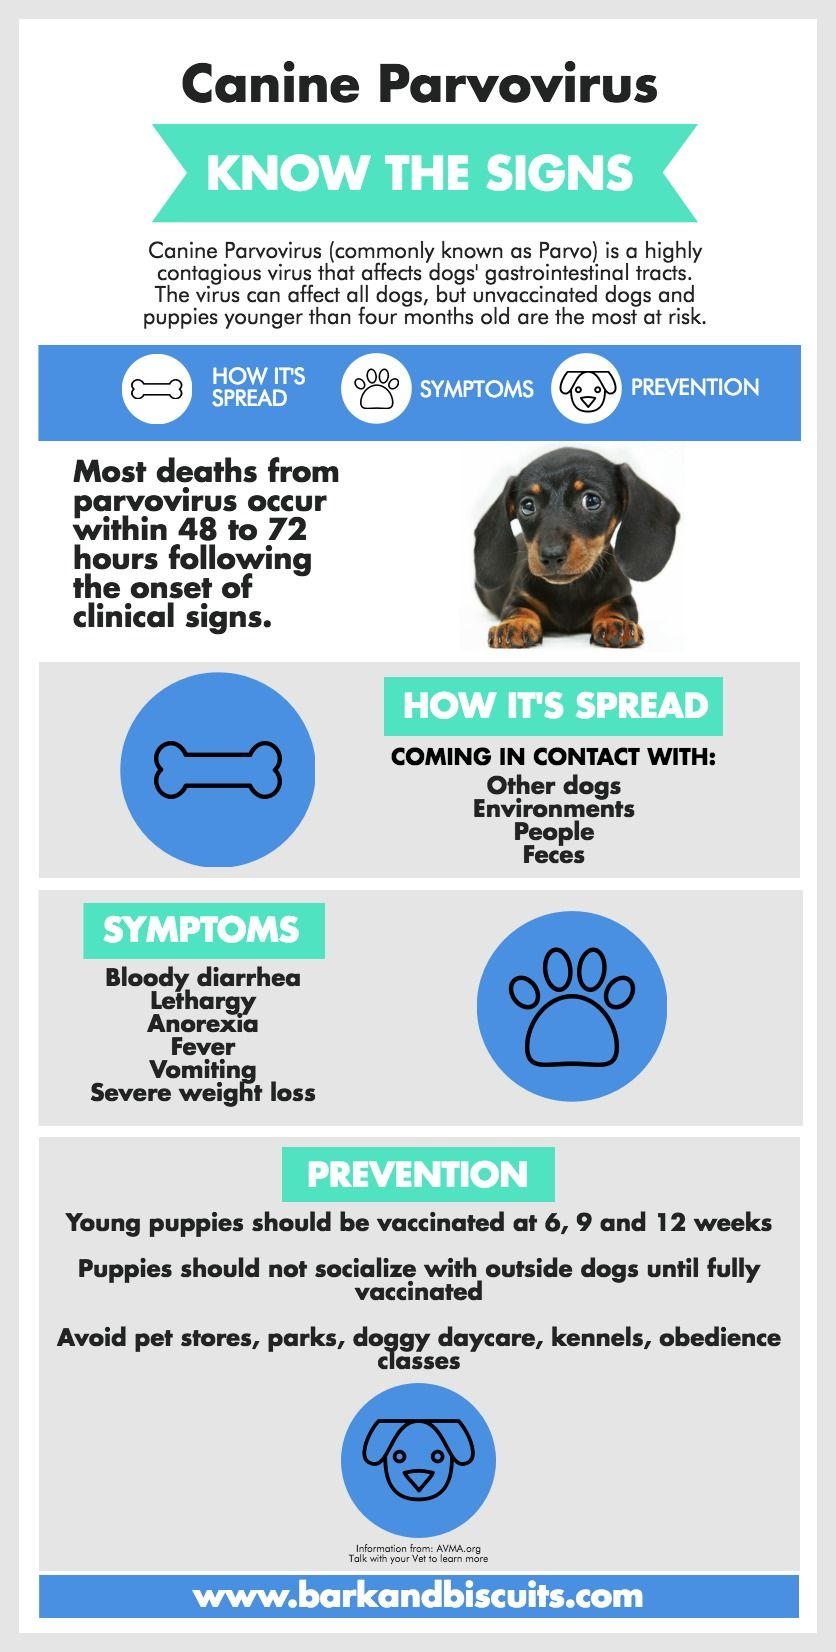 New Puppy Guide Surviving The First 24 Hours Bark And Biscuits Puppy Care Dog Training Obedience Dog Care Tips